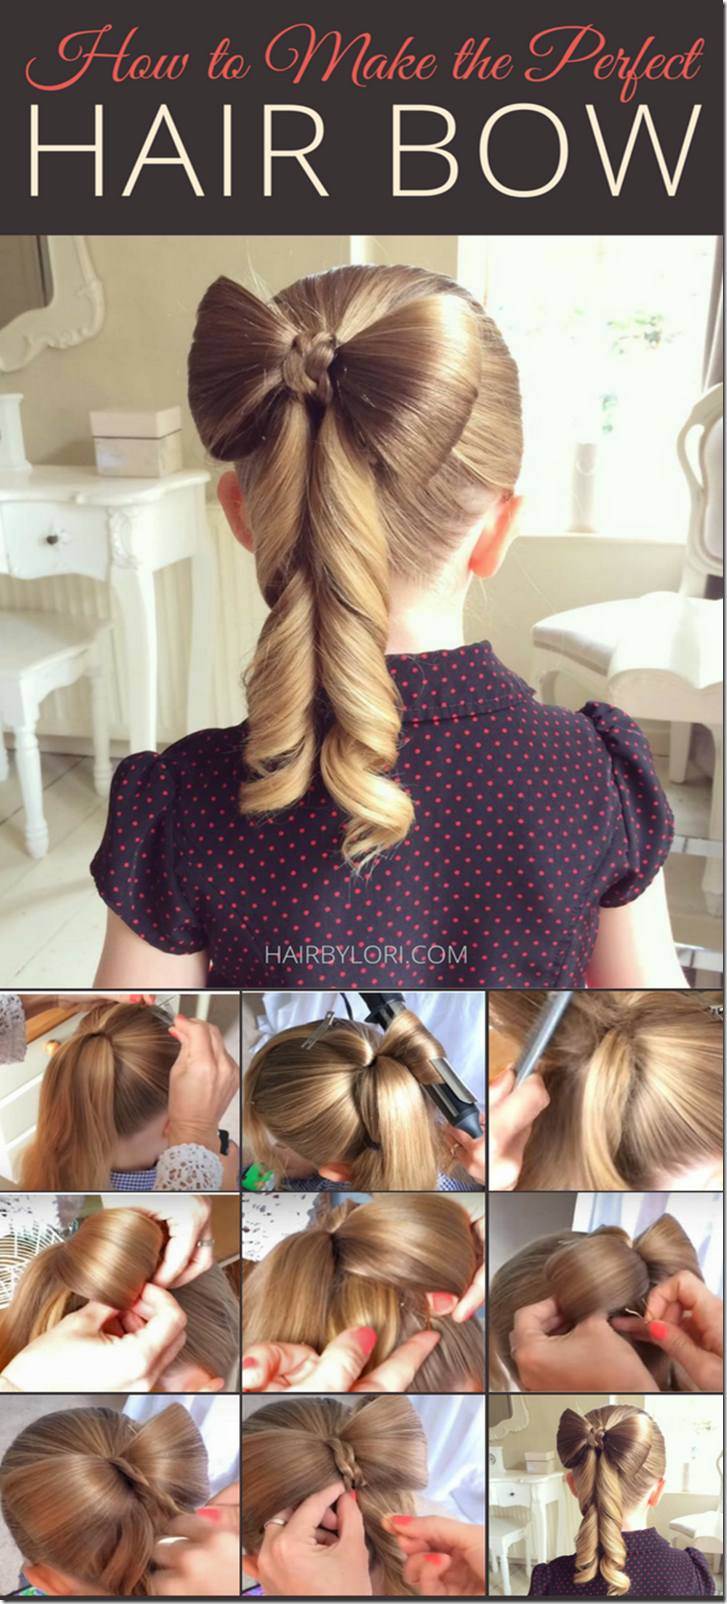 step by step - how to make the perfect hair bow hairstyle